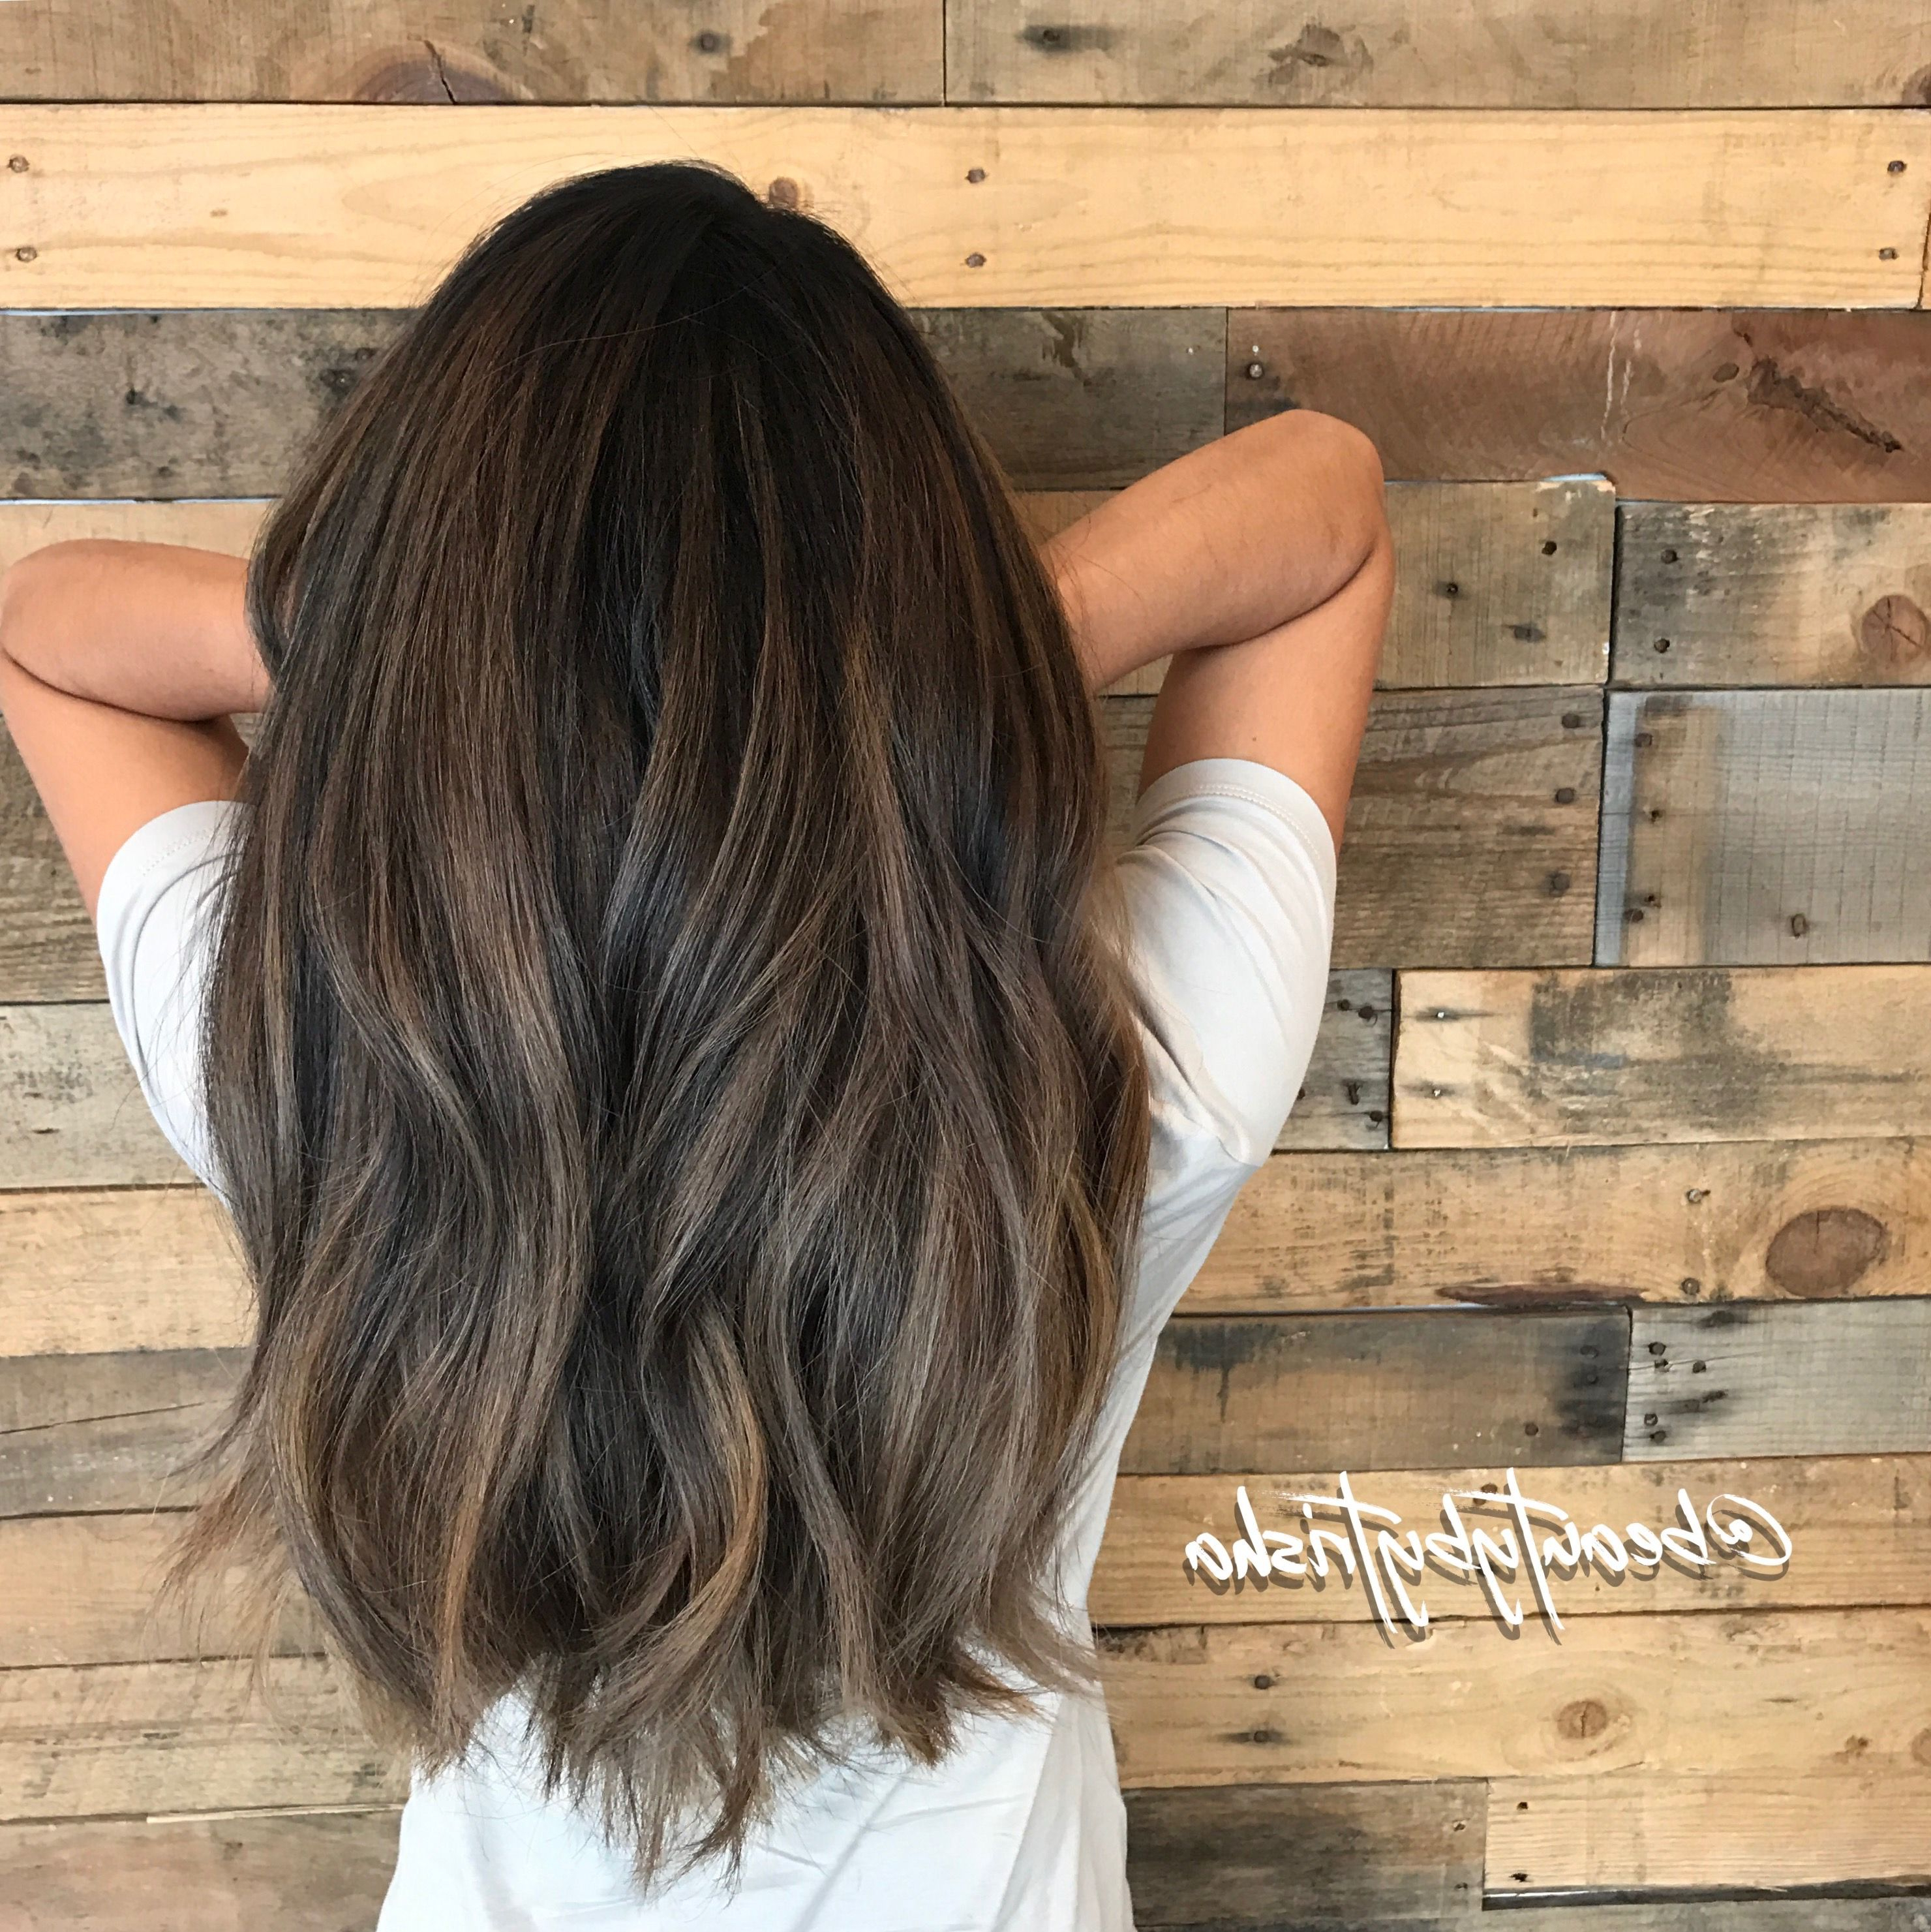 Recent Soft Ombre Waves Hairstyles For Asian Hair In Pin On Maui Hair Studio (View 15 of 20)